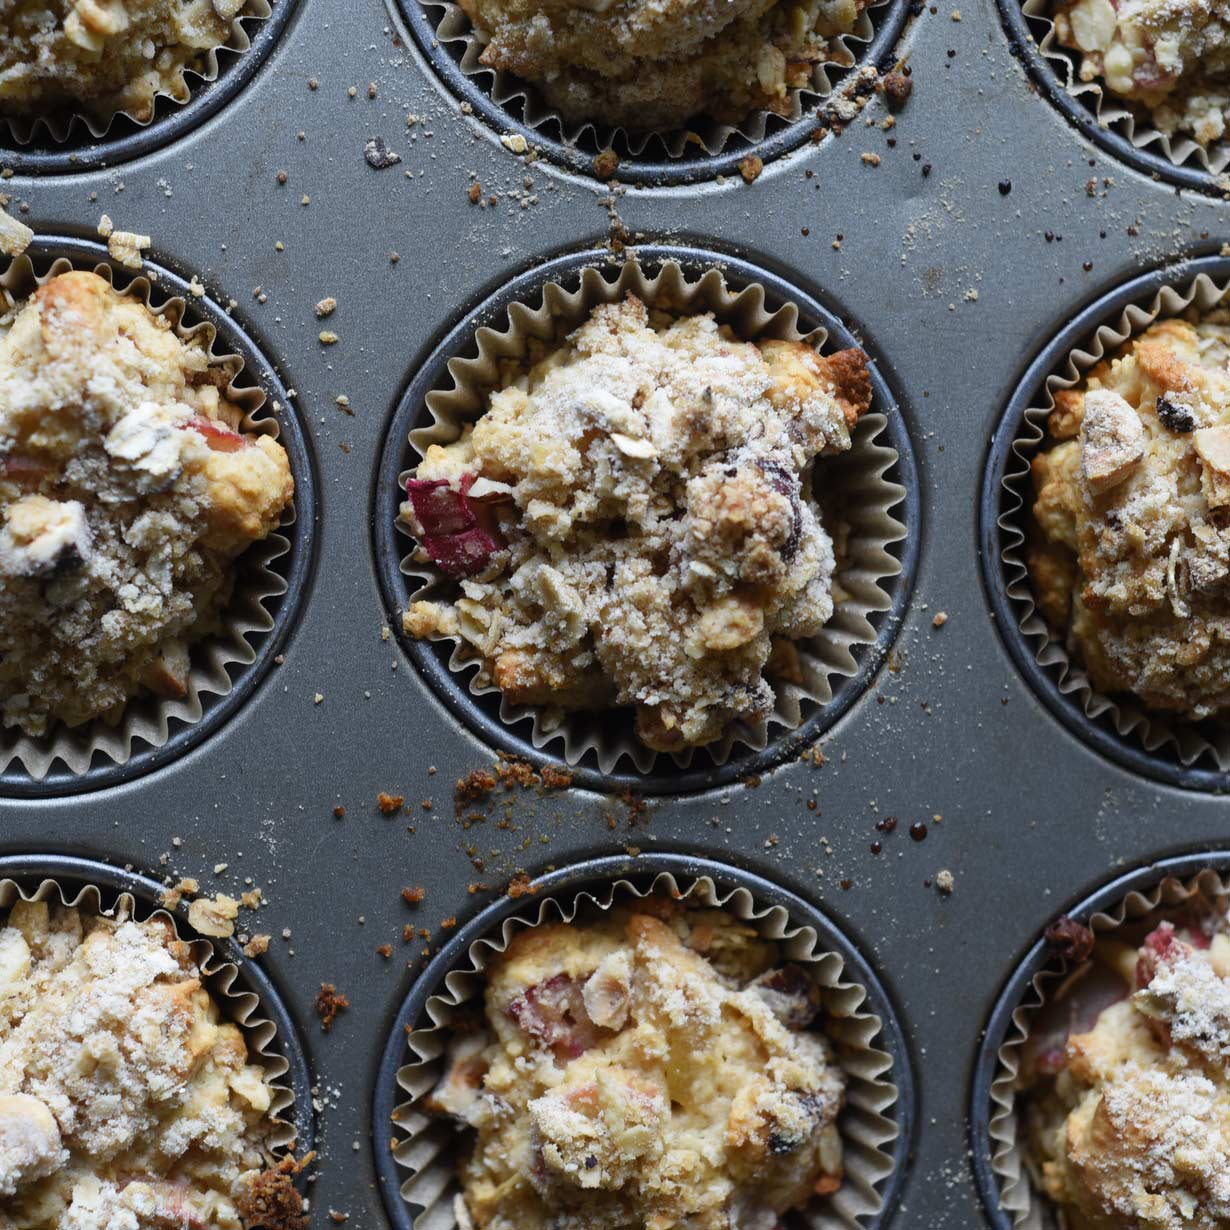 These Rhubarb Muffins with Candied Ginger are moist and super easy to make: all you need is a few bowls and a muffin pan! If you're looking for inspiring rhubarb recipes, look no further than this breakfast and snack time favorite.